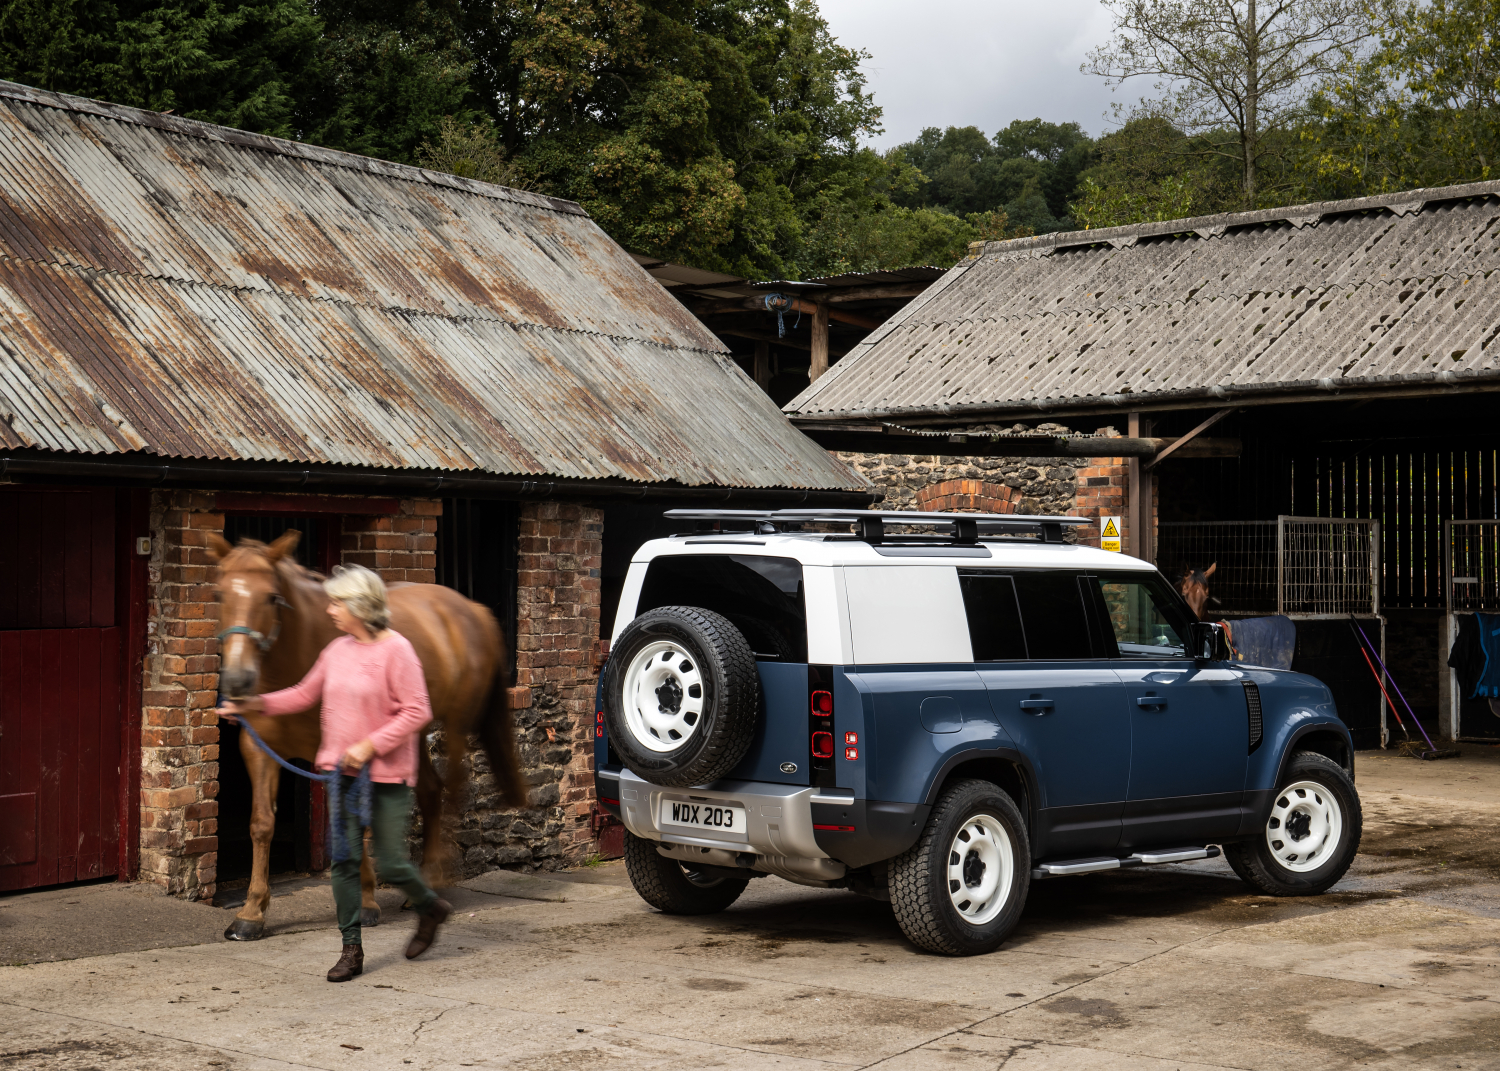 Land Rover Defender Hard Top: most Rugged and Durable Commercial Vehicle on Sale now - Image 1